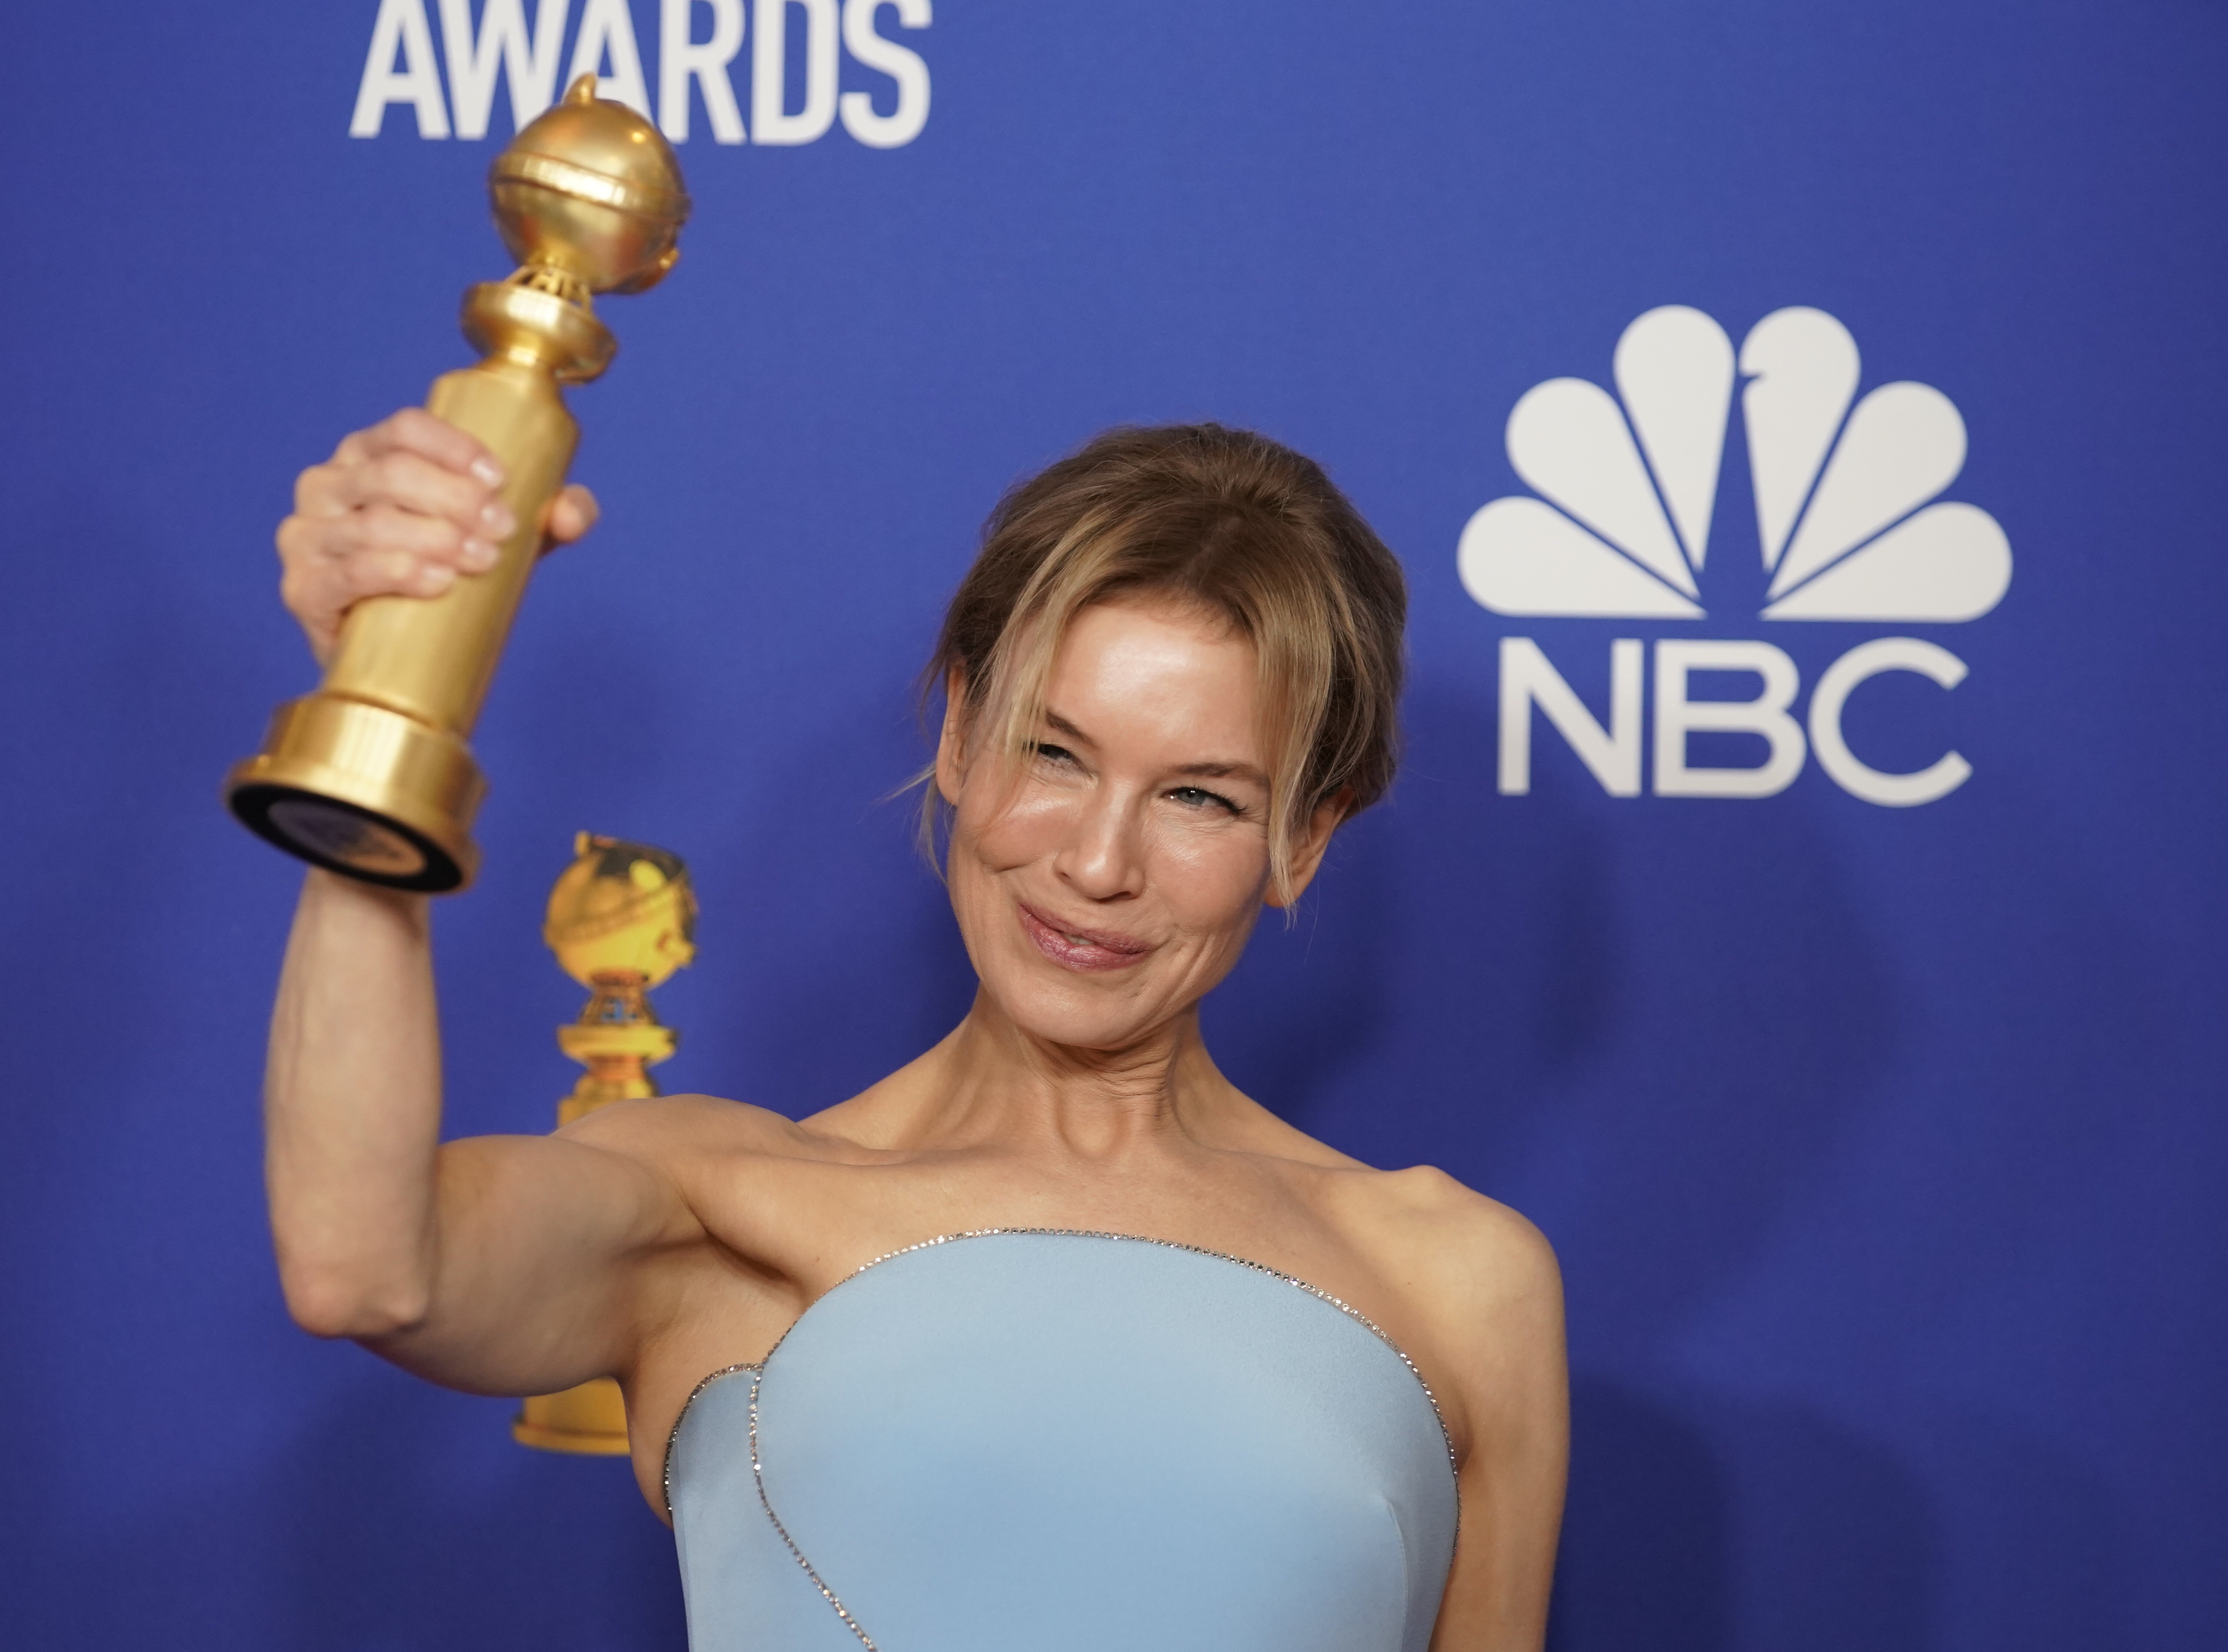 """77th Golden Globe Awards - Photo Room - Beverly Hills, California, U.S., January 5, 2020 - Renee Zellweger poses backstage with her Best Performance by an Actress in a Motion Picture - Drama award for """"Judy"""". REUTERS/Mike Blake"""